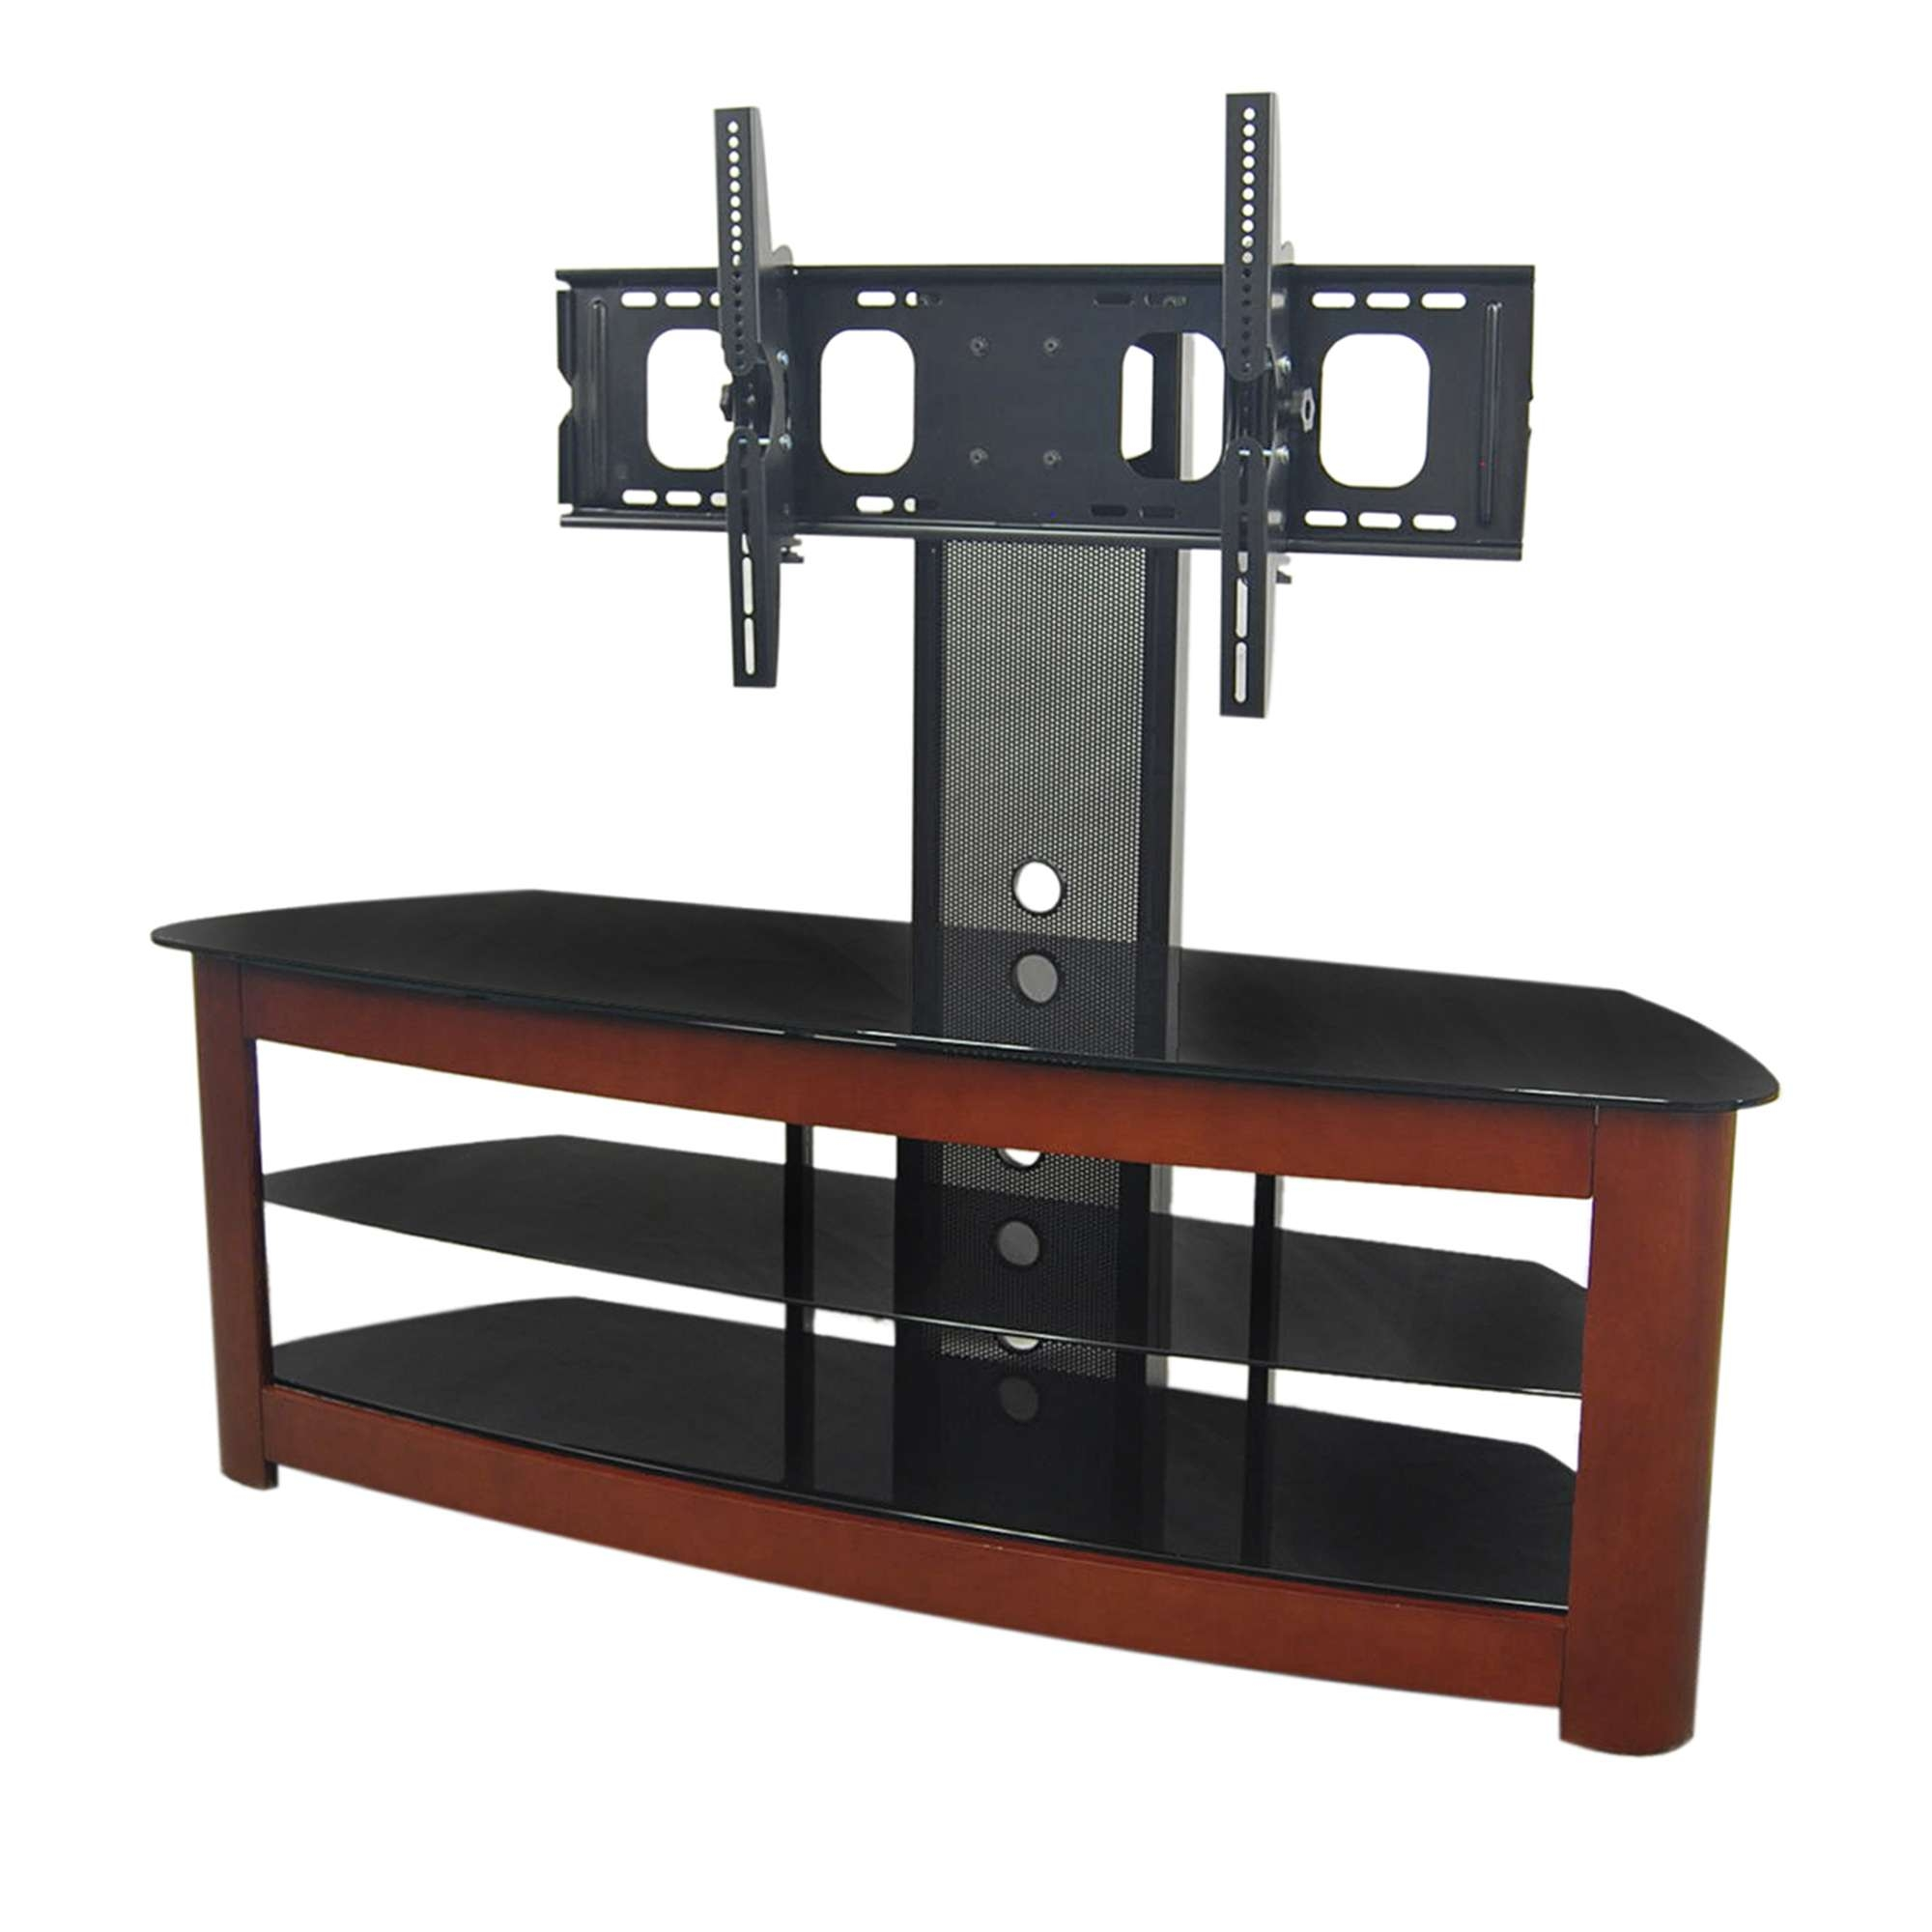 Amazing Bjs Tv Stand 54 In Home Remodel Ideas With Bjs Tv Stand Throughout Bjs Tv Stands (View 18 of 20)